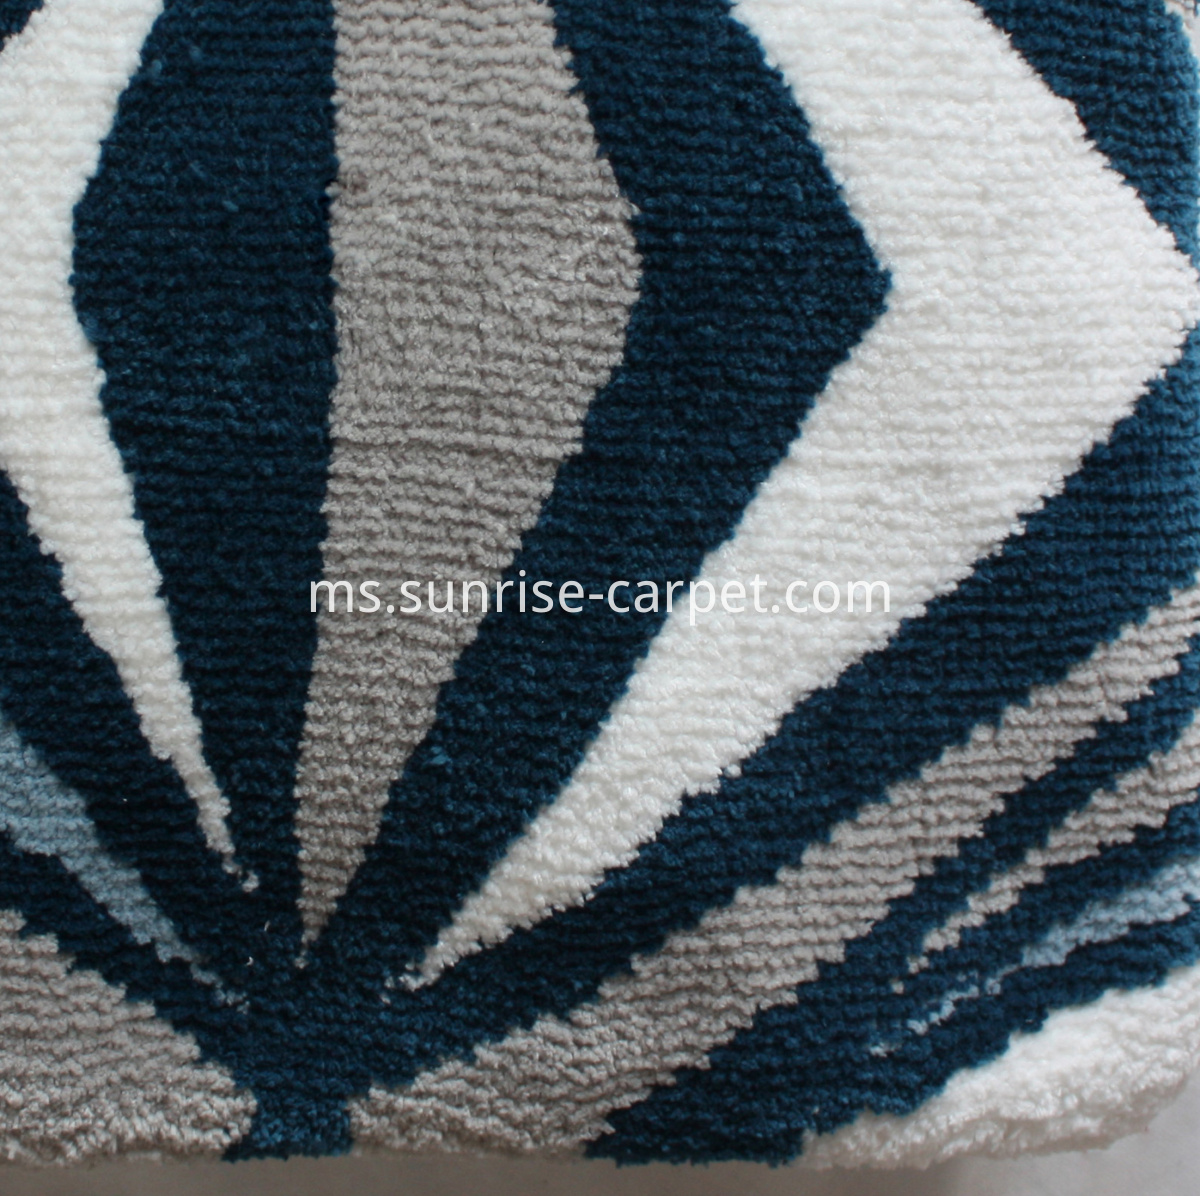 Cushion with Nice Design